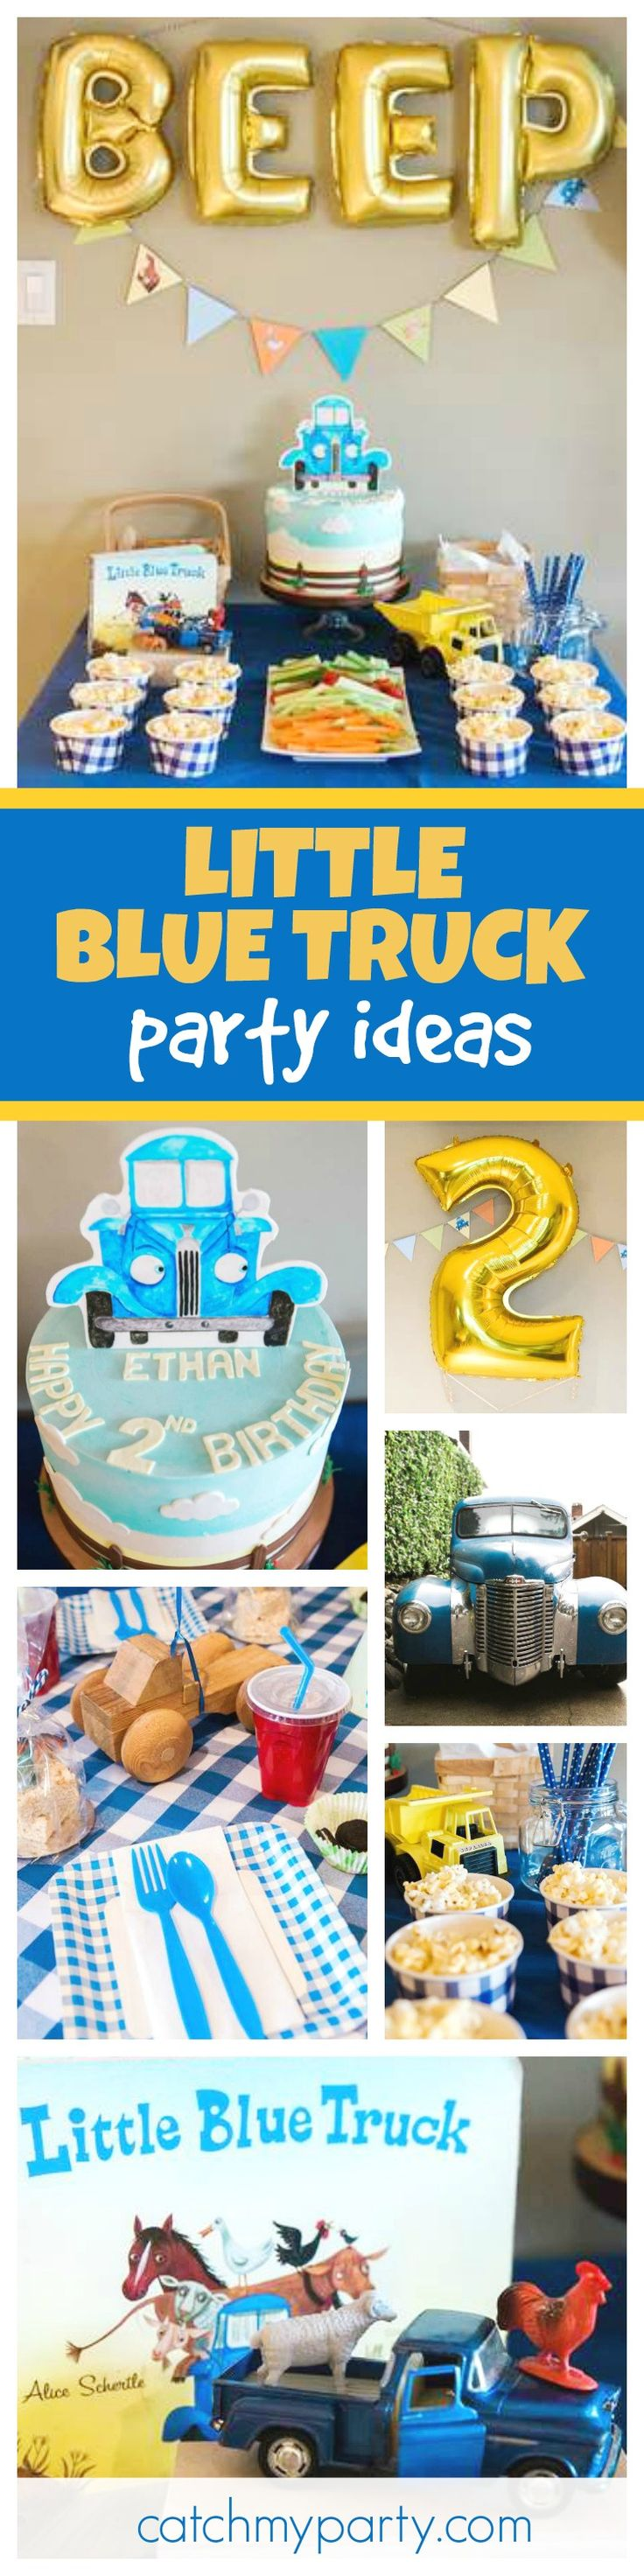 Don't miss this fantastic Little Blue Truck inspired birthday party! The birthday cake is so cute!! See more party ideas and share yours at CatchMyParty.com